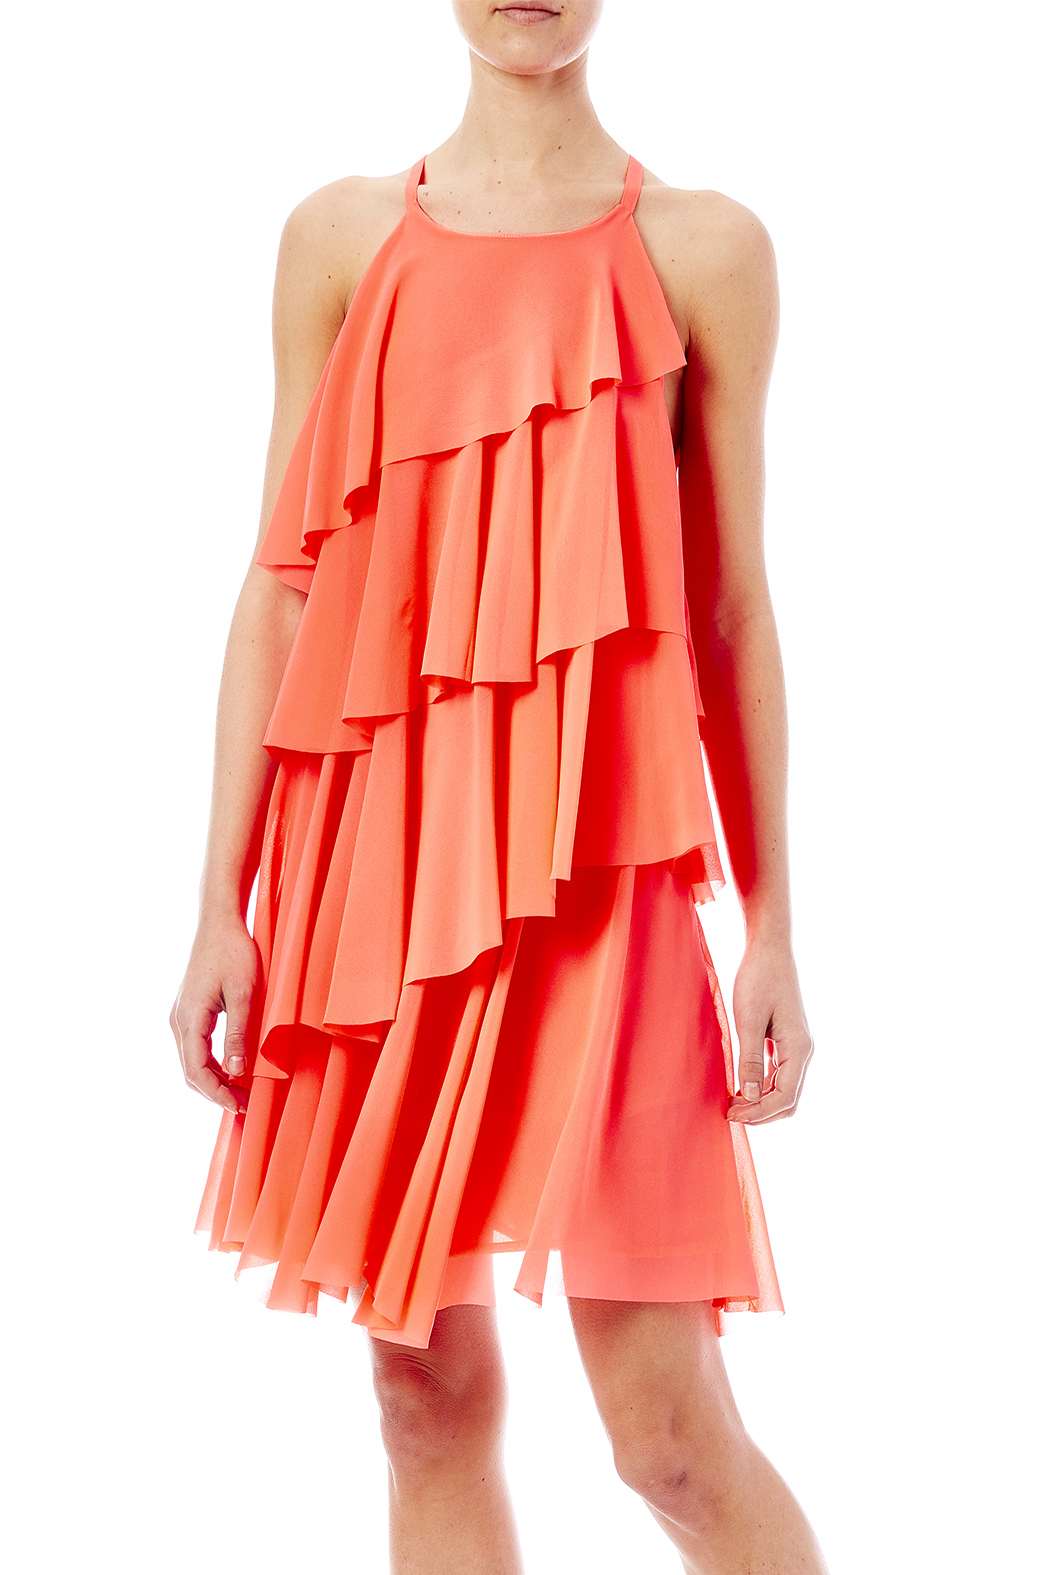 Ark Amp Co Coral Khloe Dress From Texas By Maya Star Shoptiques